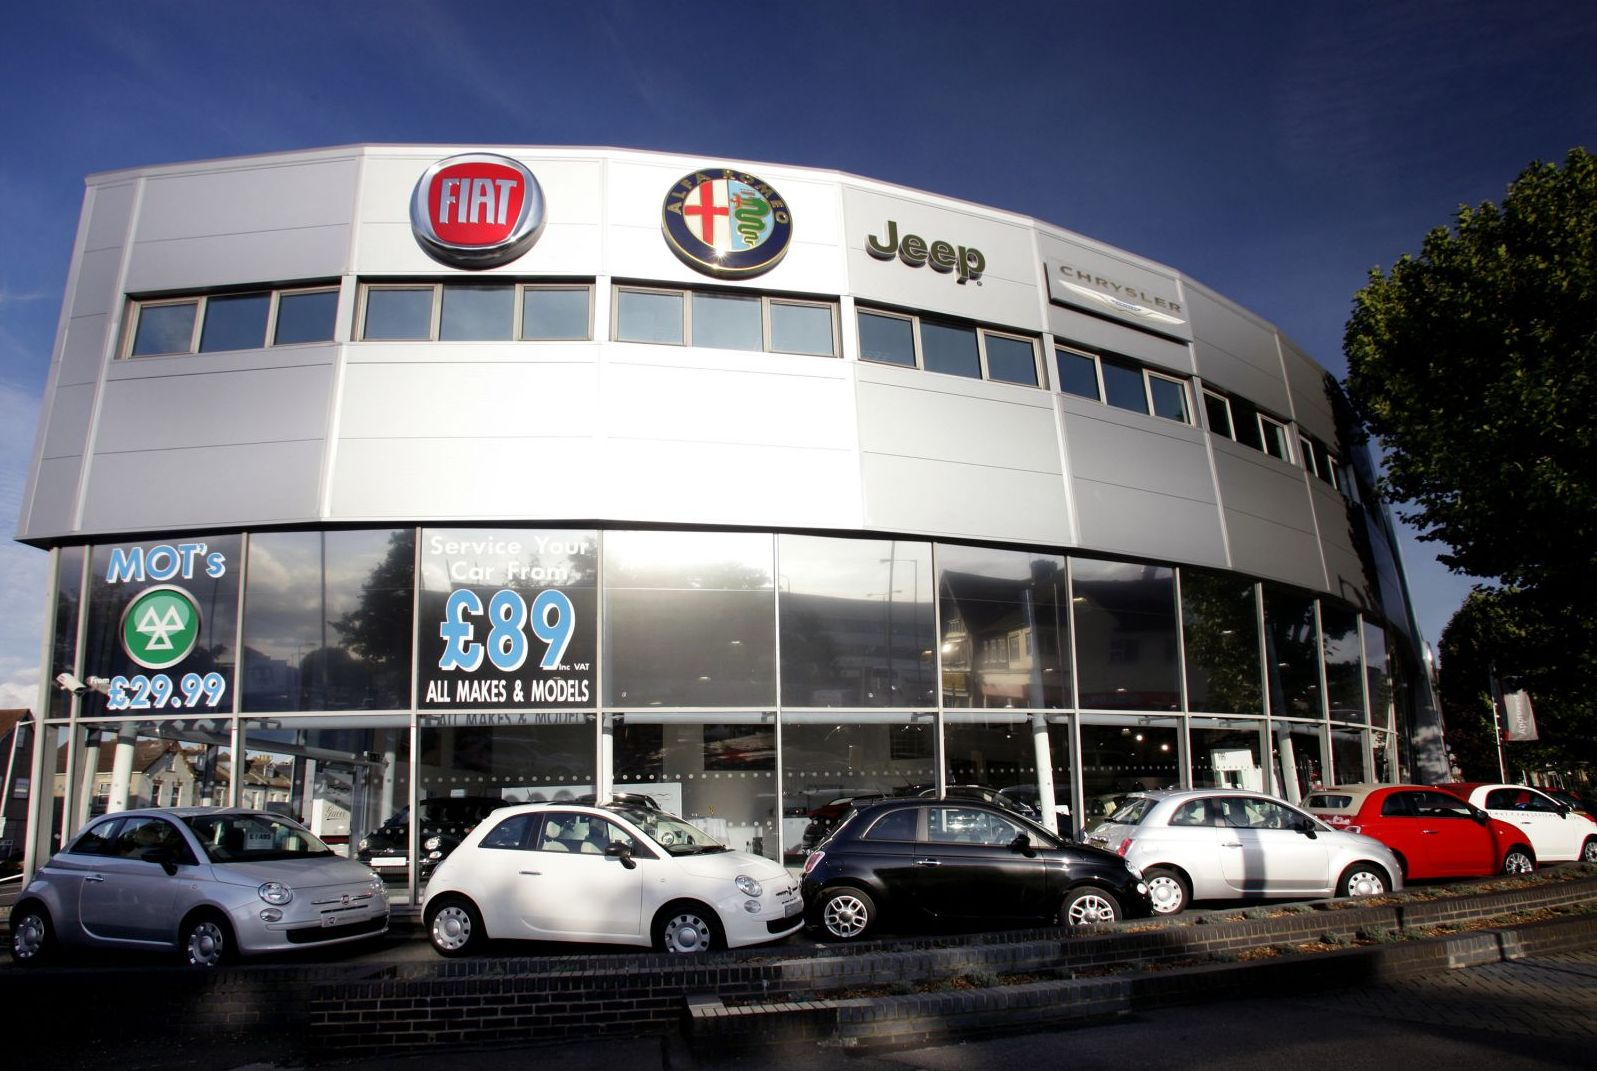 daily cars grand opening for new fiat group automobiles dealership. Black Bedroom Furniture Sets. Home Design Ideas